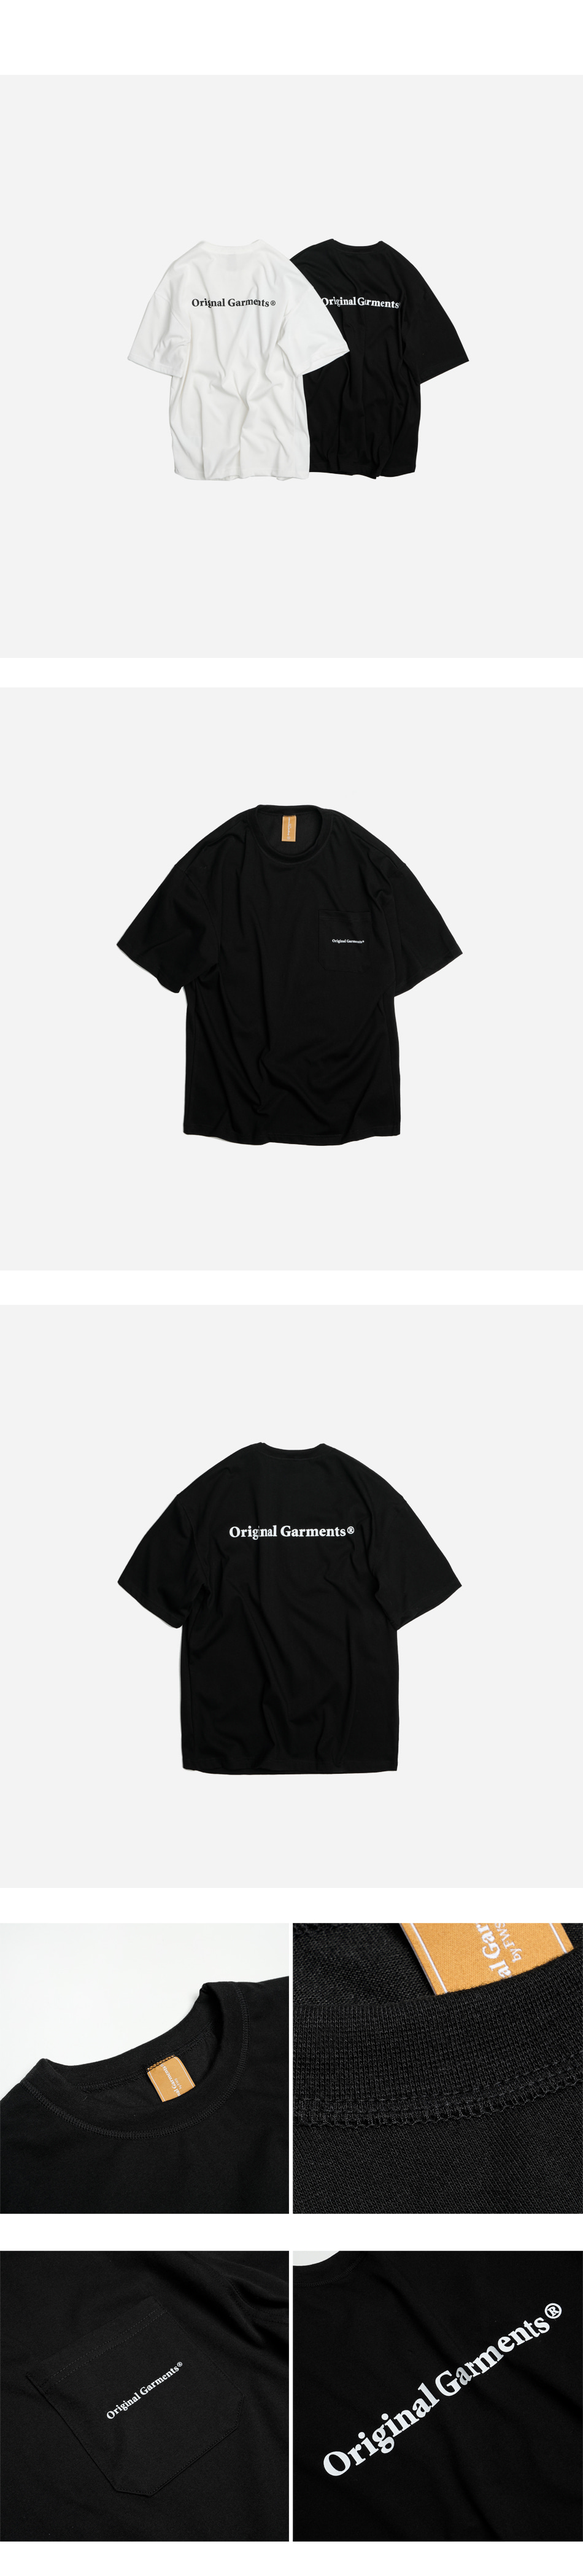 프리즘웍스 OG Logo pocket tee _ black